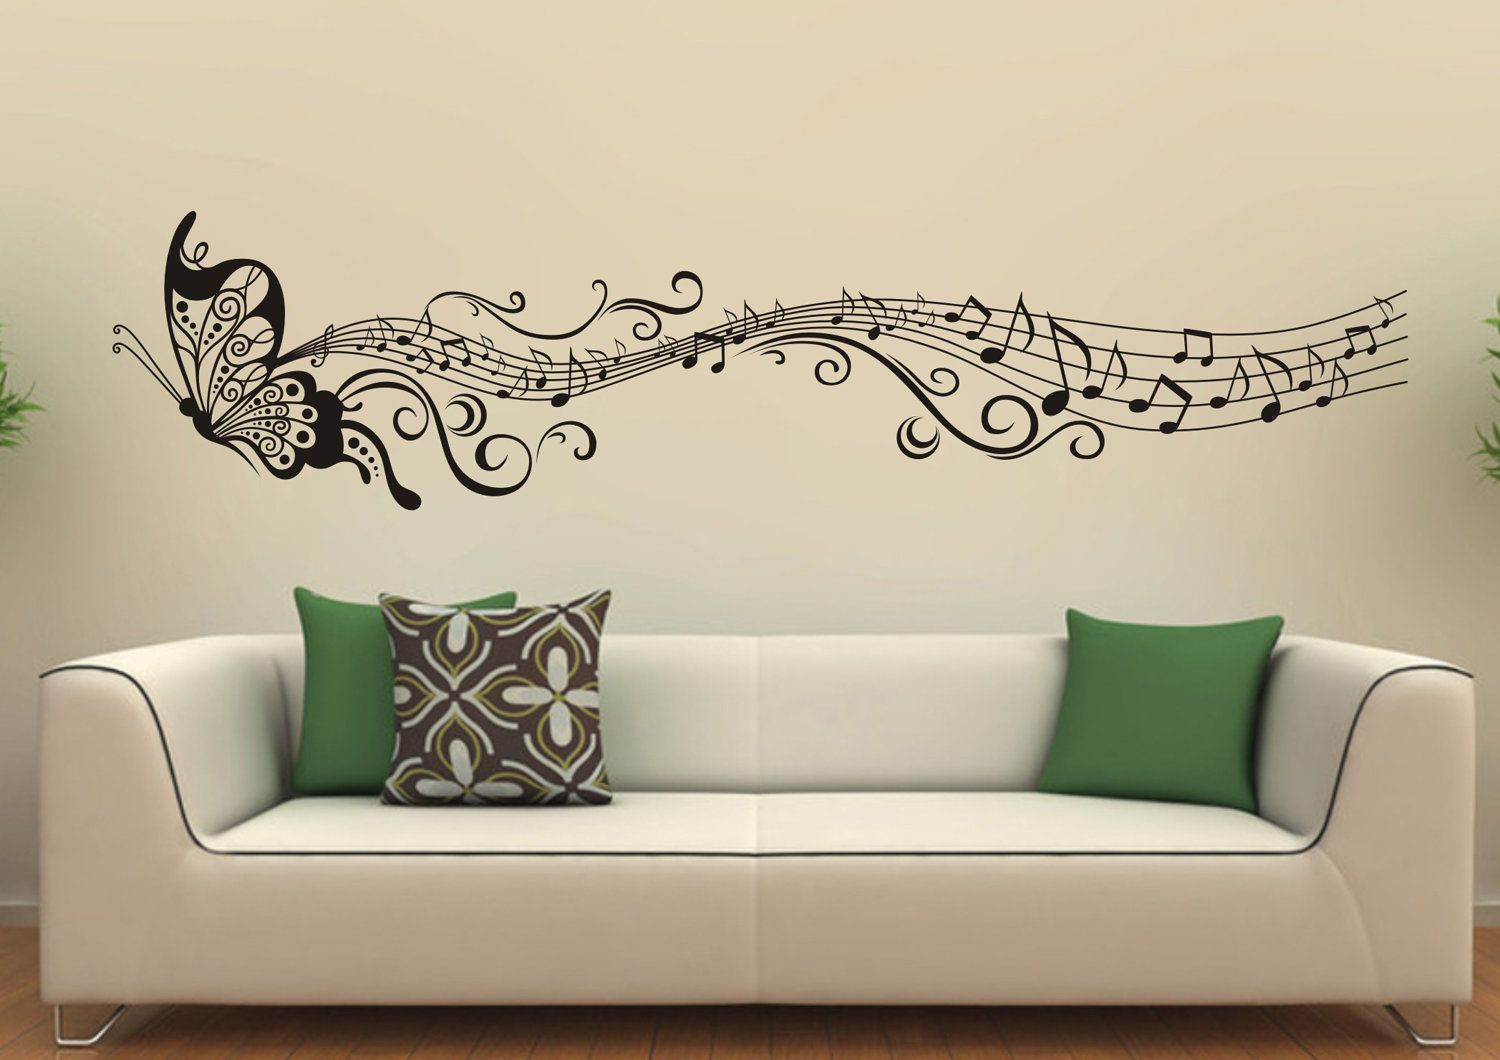 Music Butterfly Wall Decals Wall Stickers Vinyl Wall Decor Etsy Home Wall Decor Wall Vinyl Decor Cheap Wall Decor